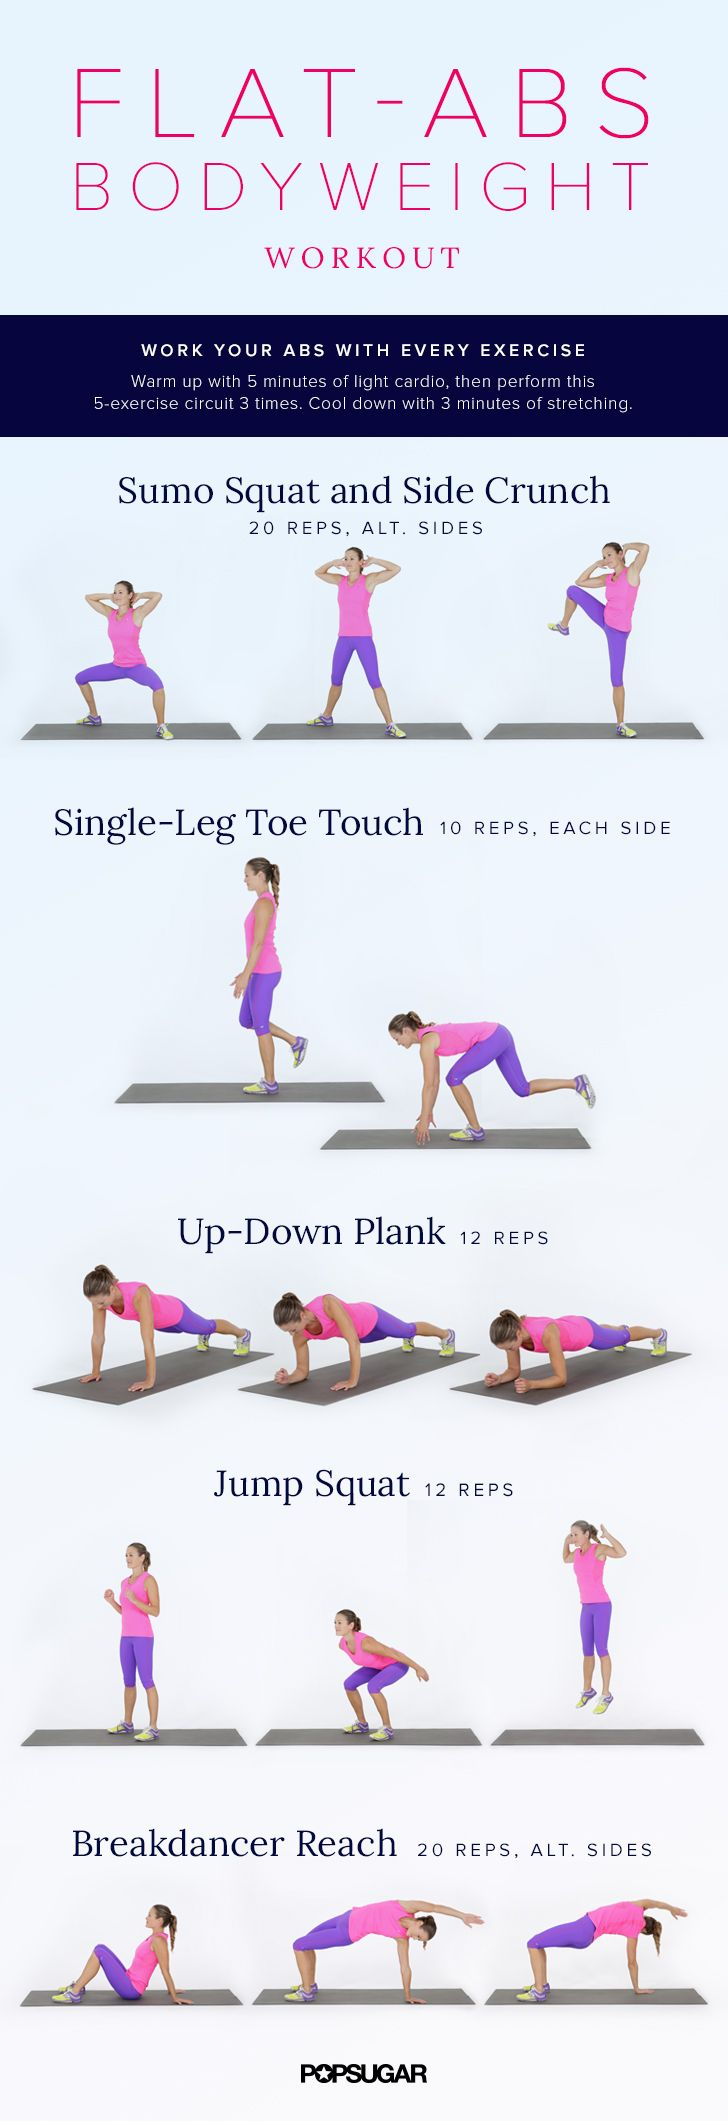 Try this bodyweight workout from our No-Excuses Workout Challenge. These full-body moves will work your abs from multiple angles and tone your middle.